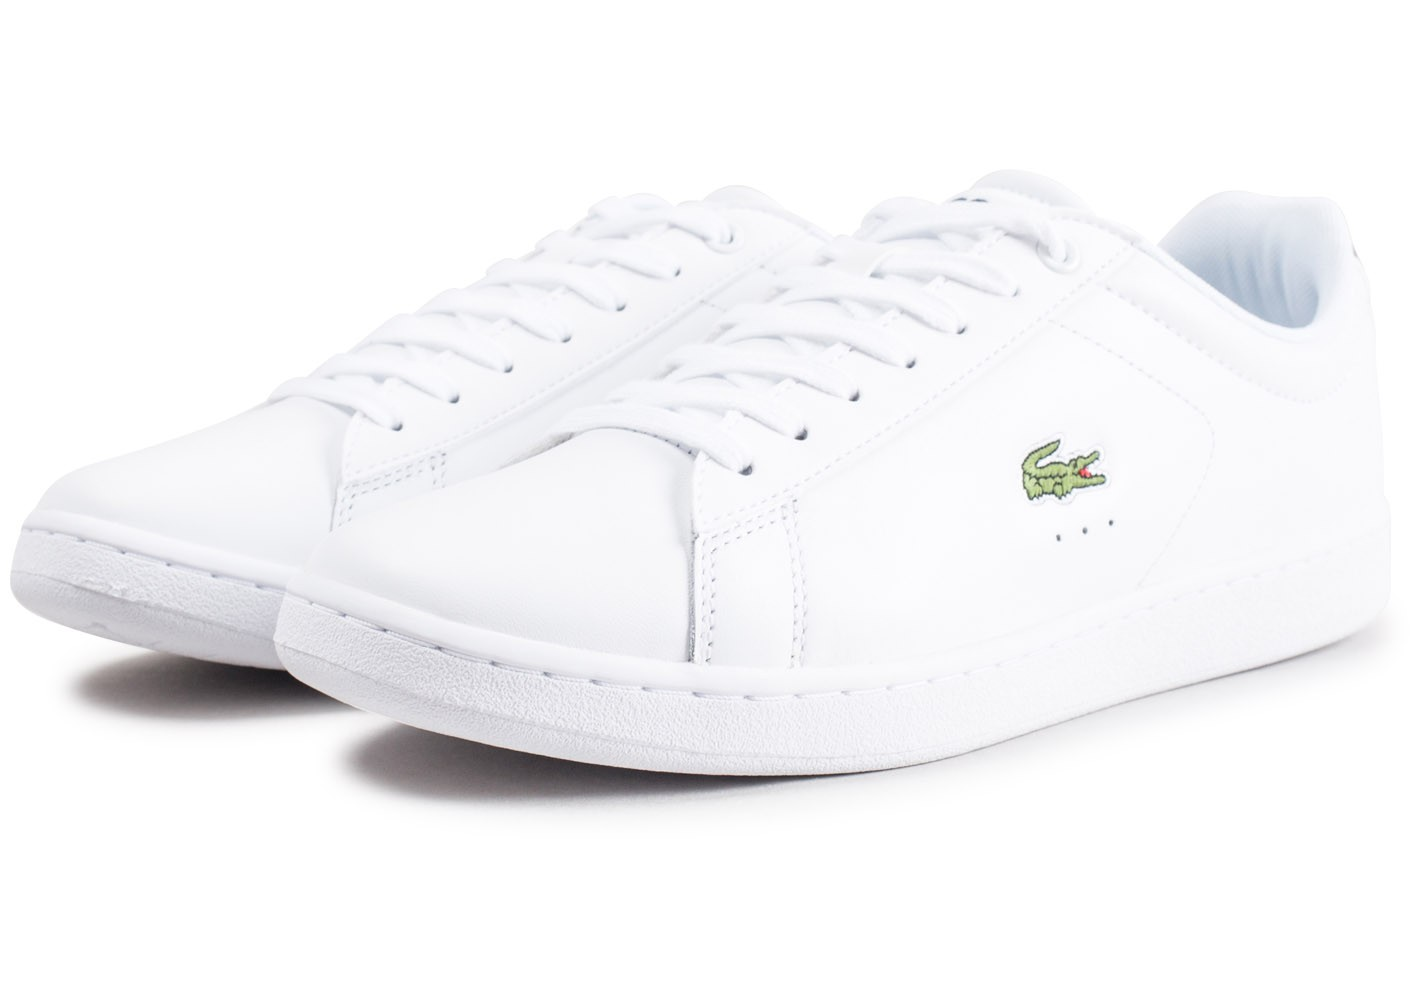 6a831d0eff9d Lacoste Carnaby Evo cuir blanc - Chaussures Baskets homme - Chausport